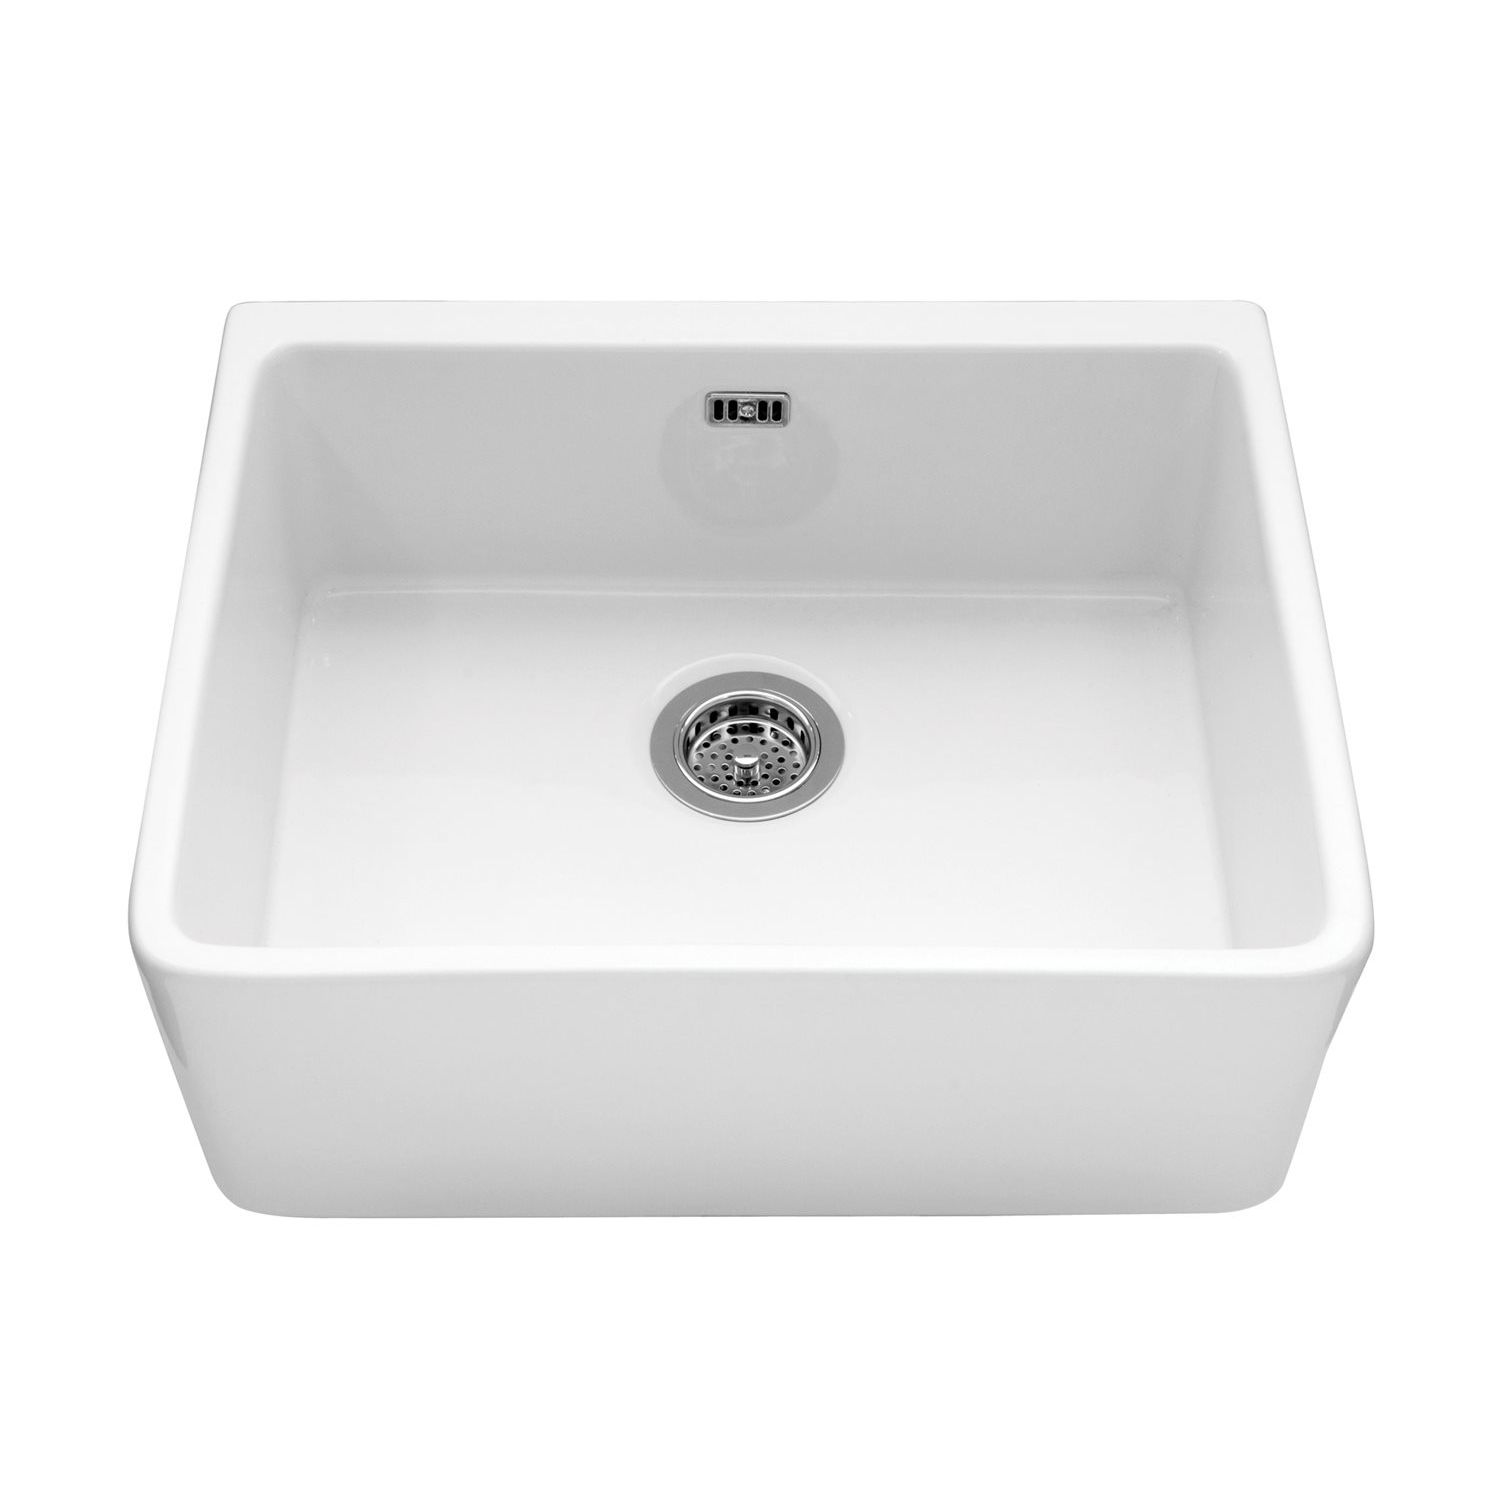 YORKSHIRE Belfast Sink with Chrome Waste - Sinks-Taps.com